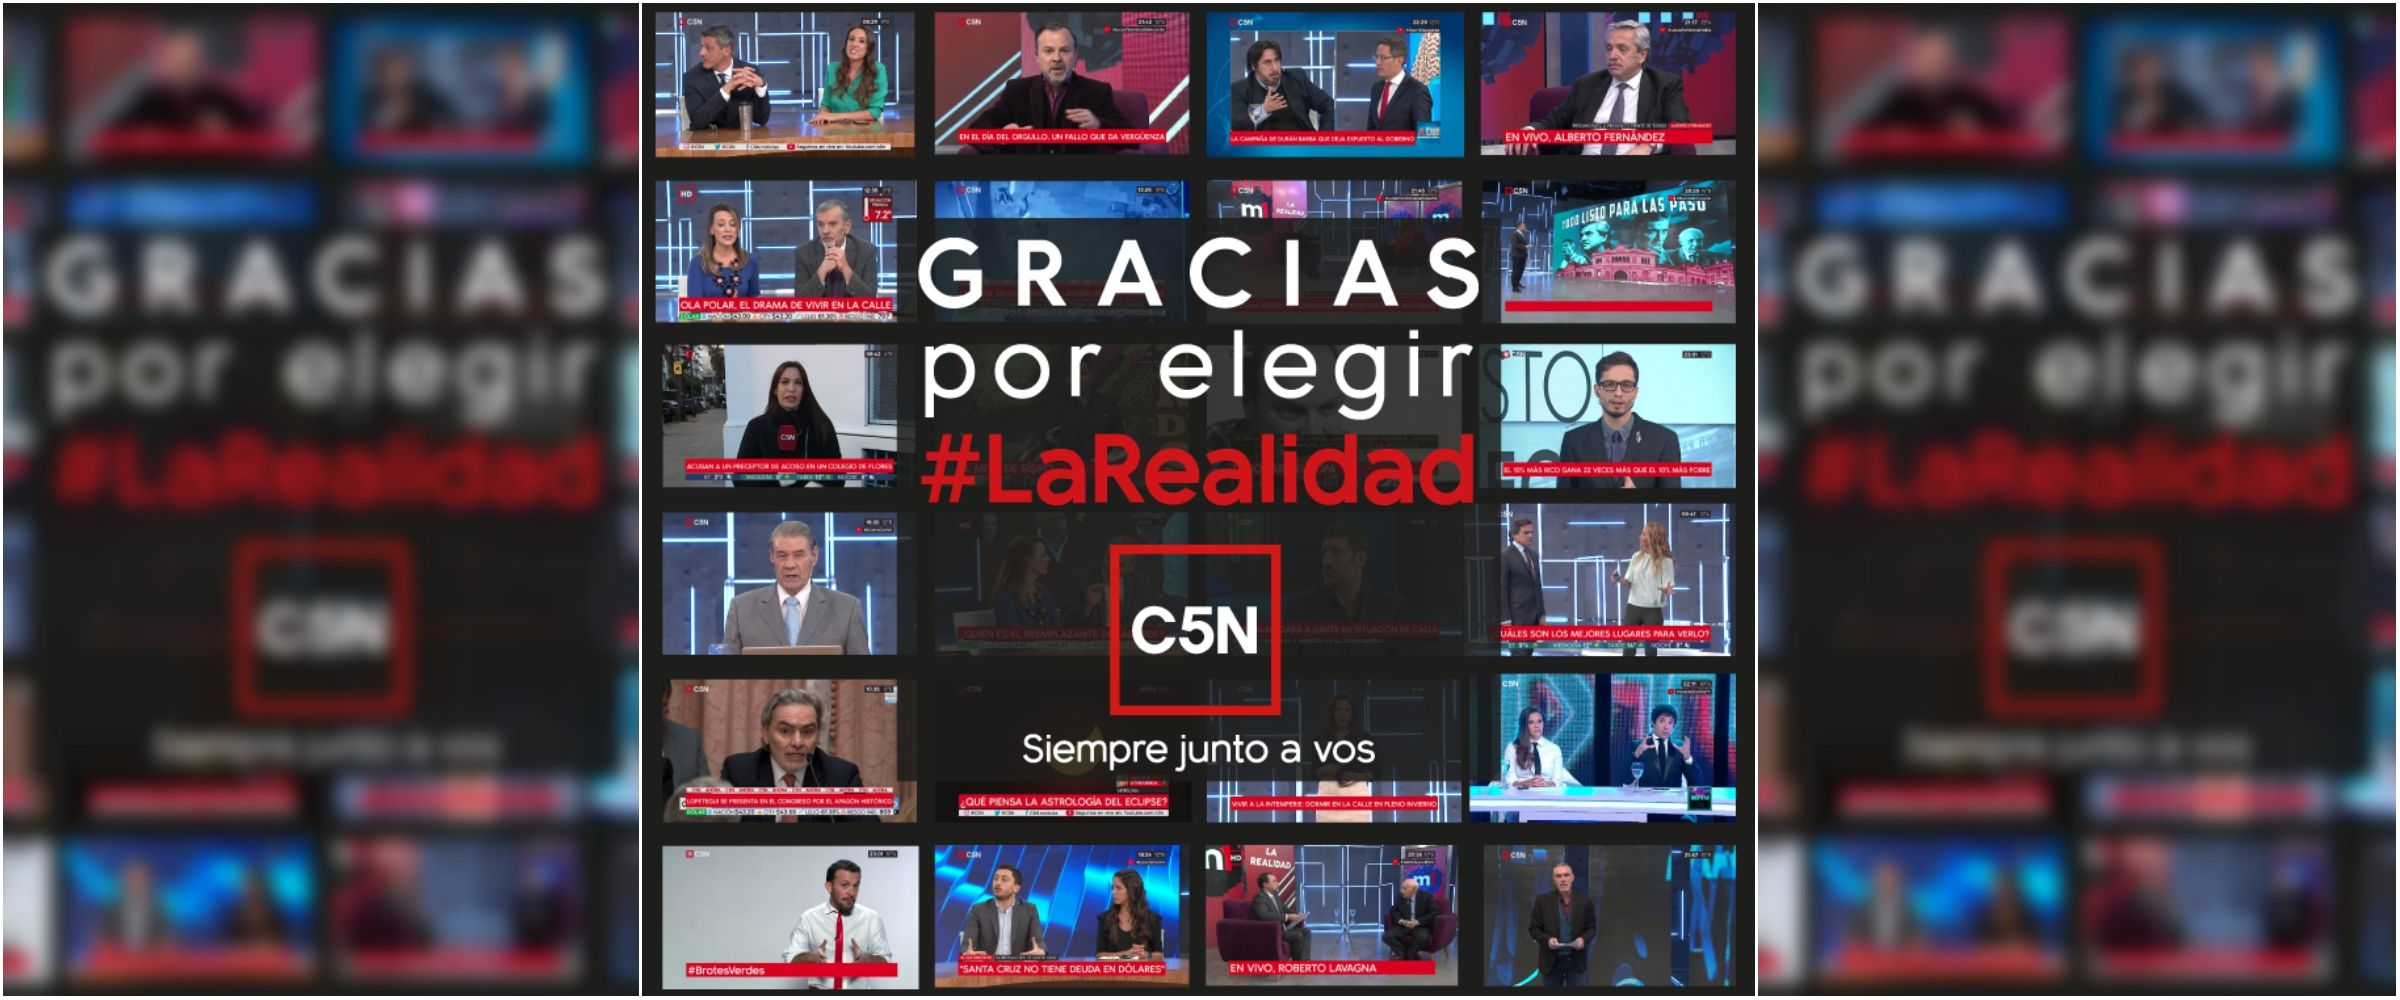 C5N lideró en rating